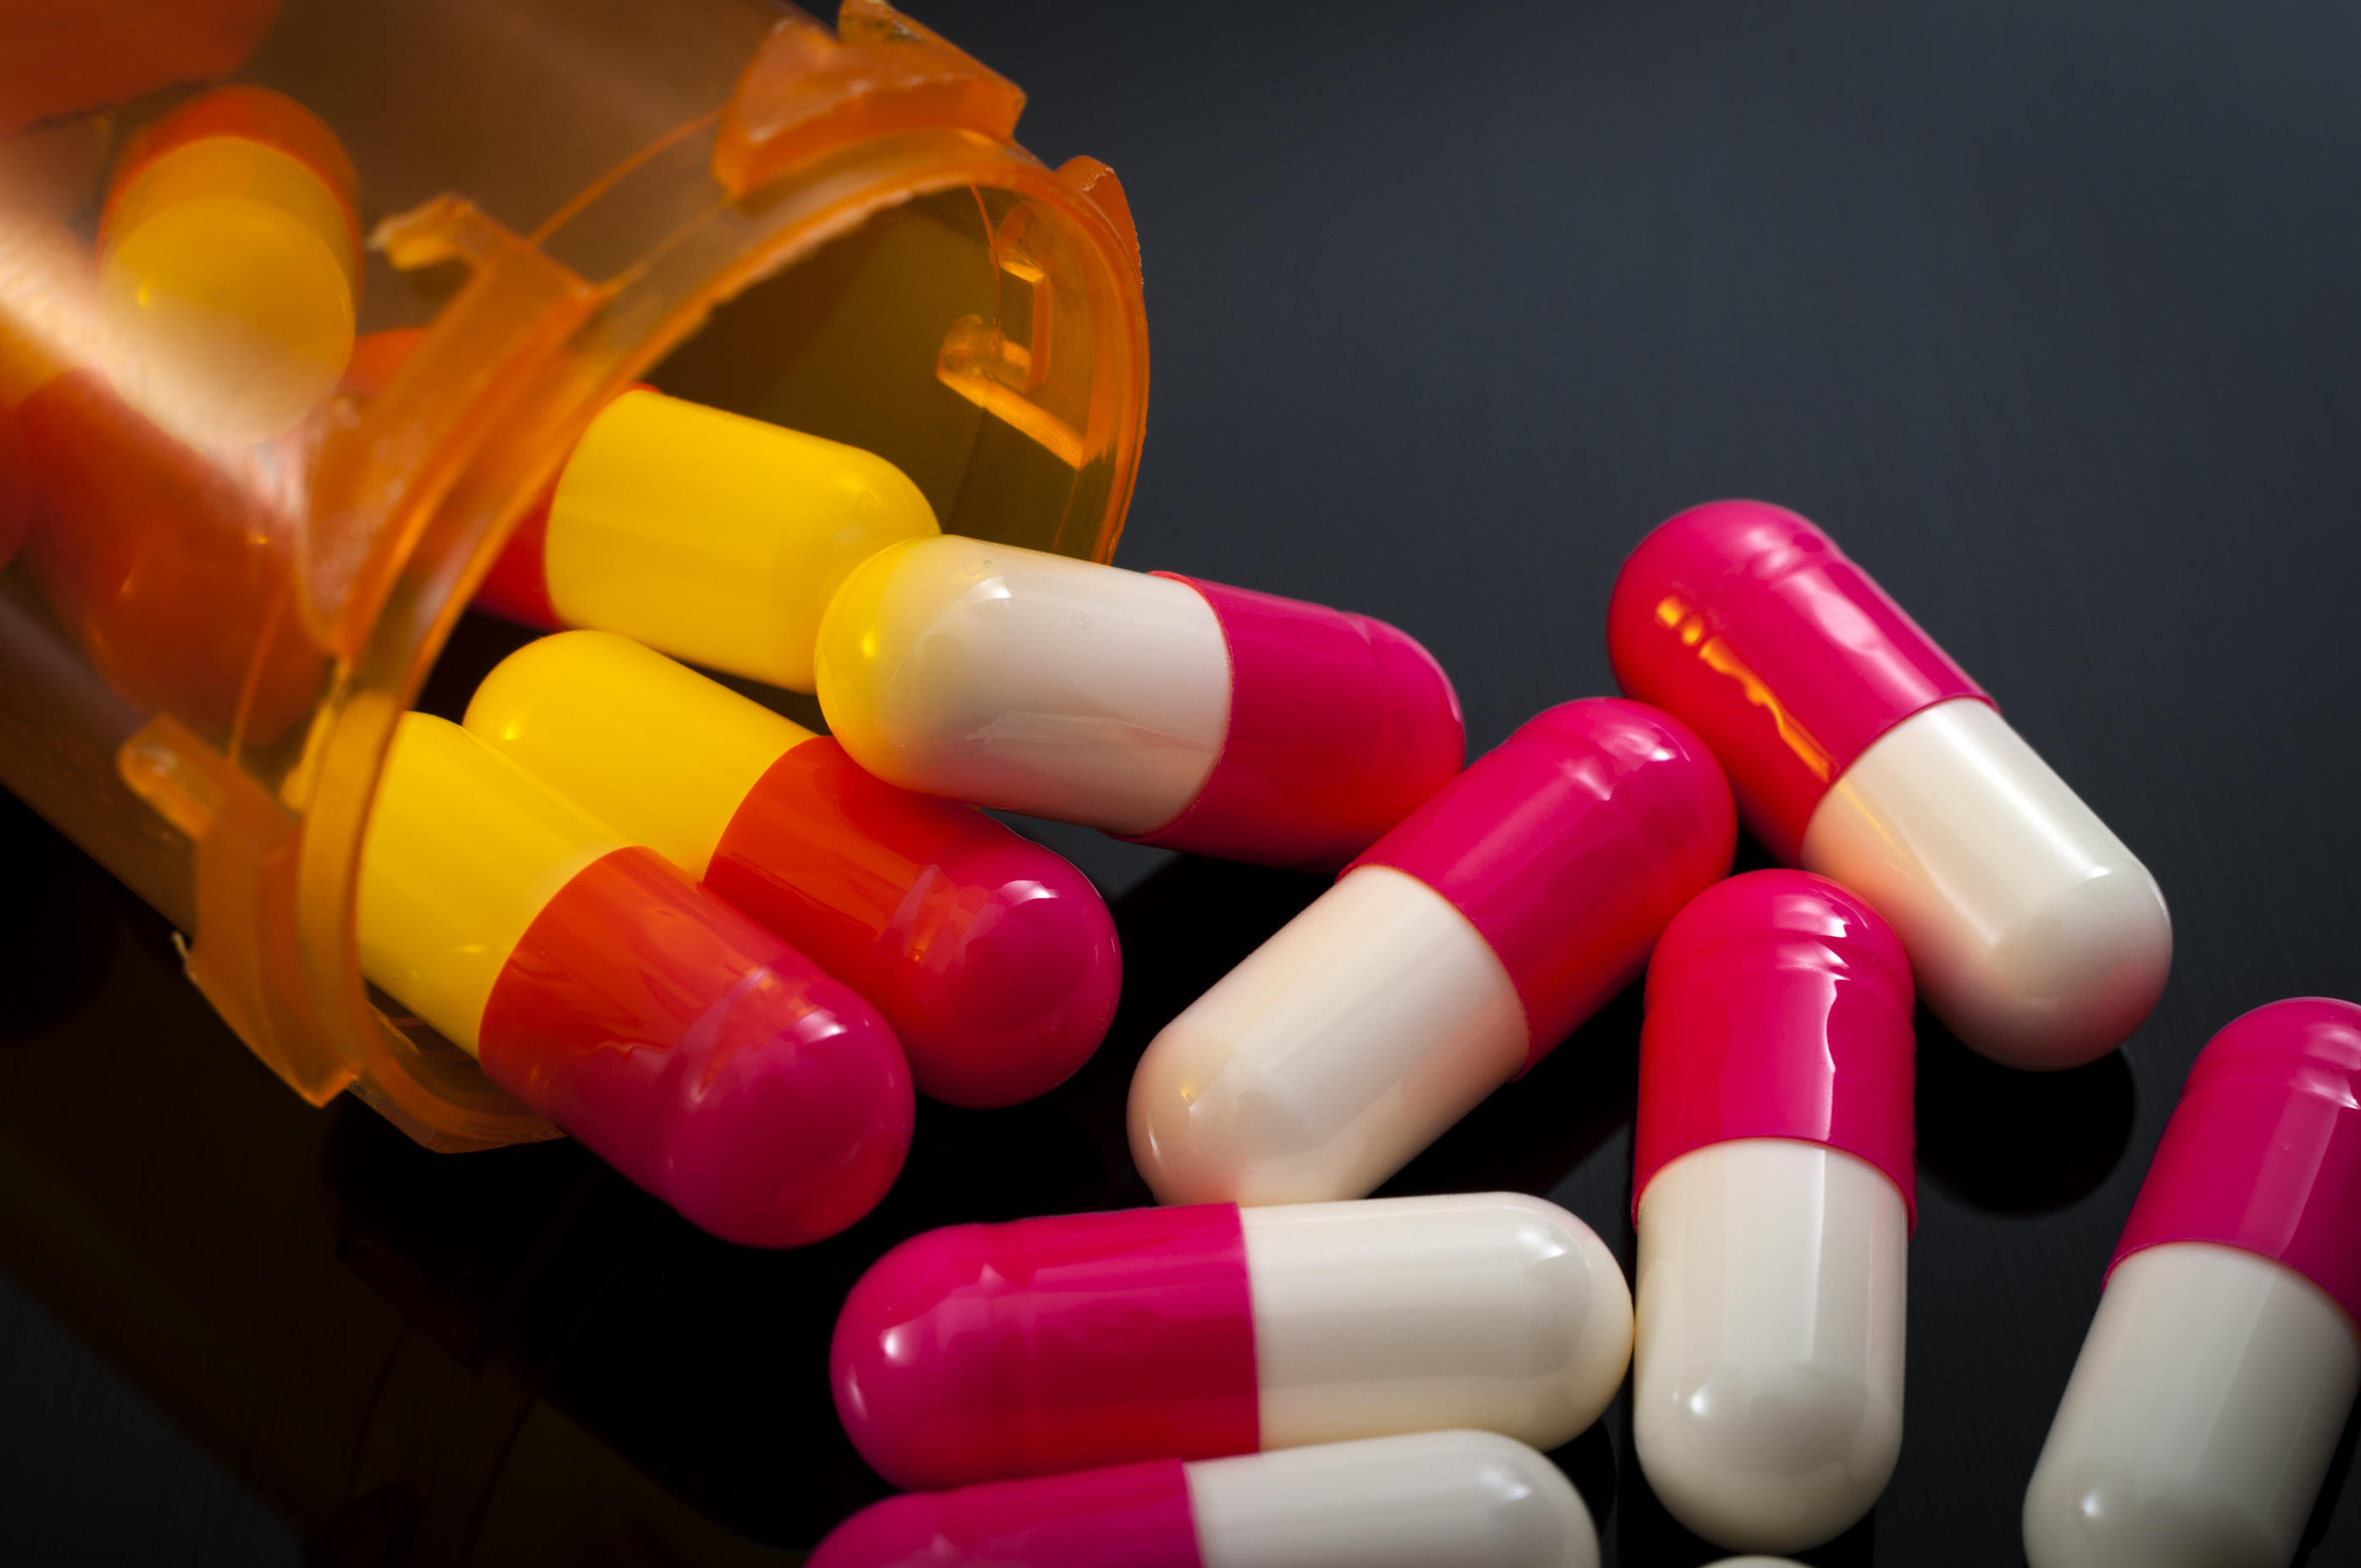 Lyrica no better than placebo for sciatica low back pain, study